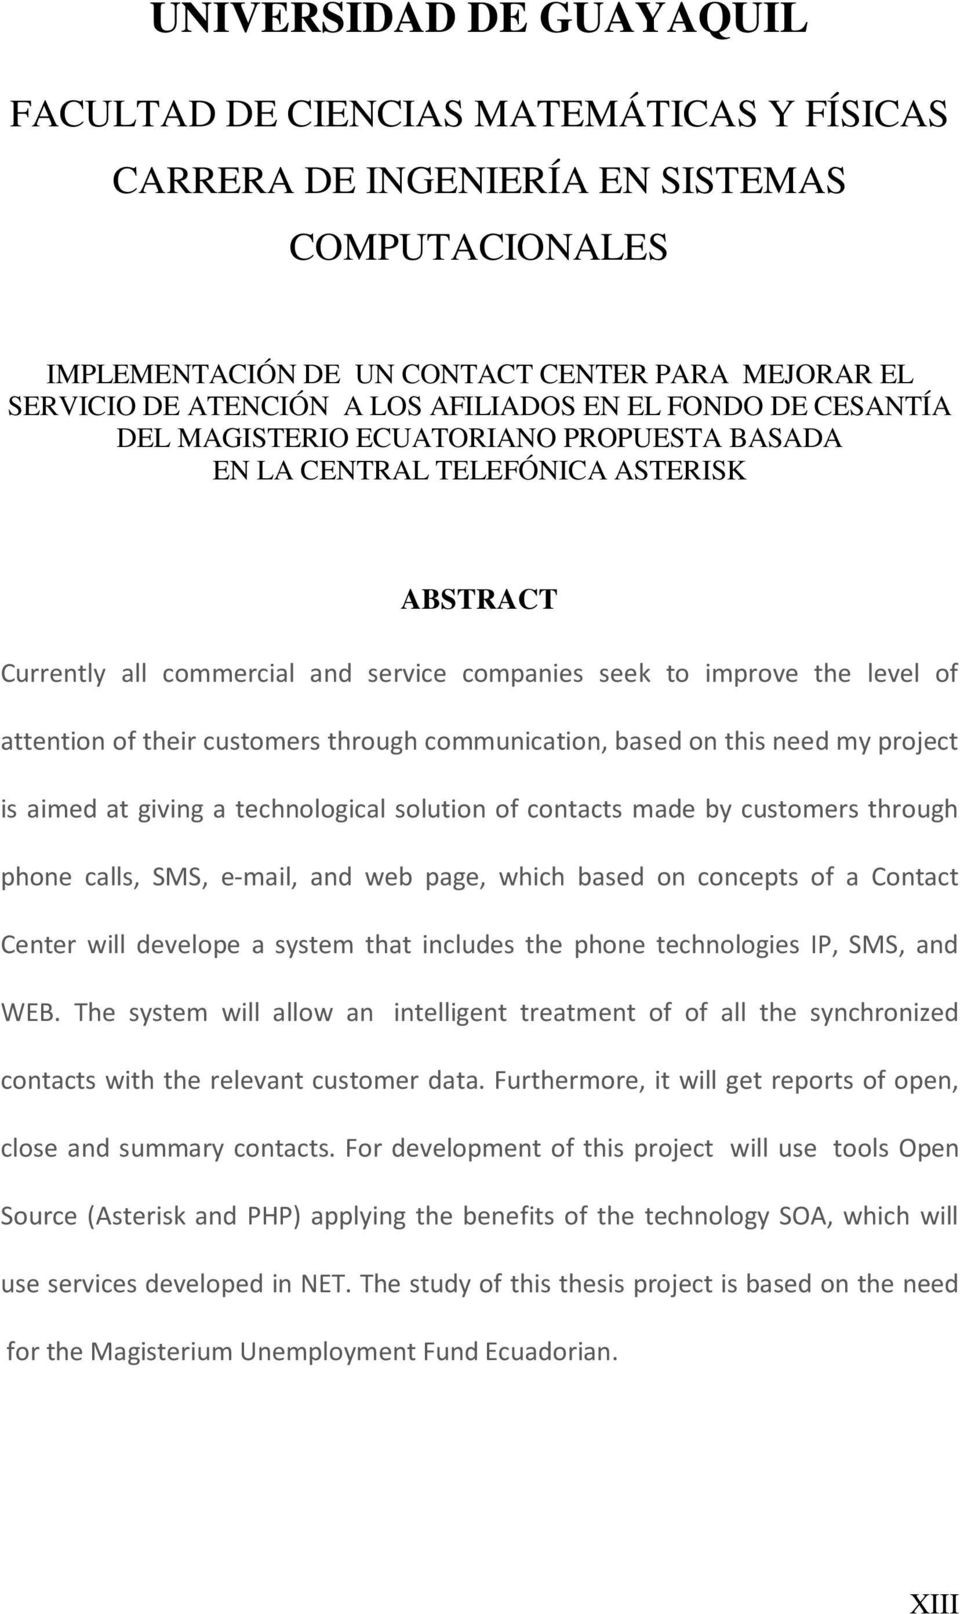 attention of their customers through communication, based on this need my project is aimed at giving a technological solution of contacts made by customers through phone calls, SMS, e-mail, and web